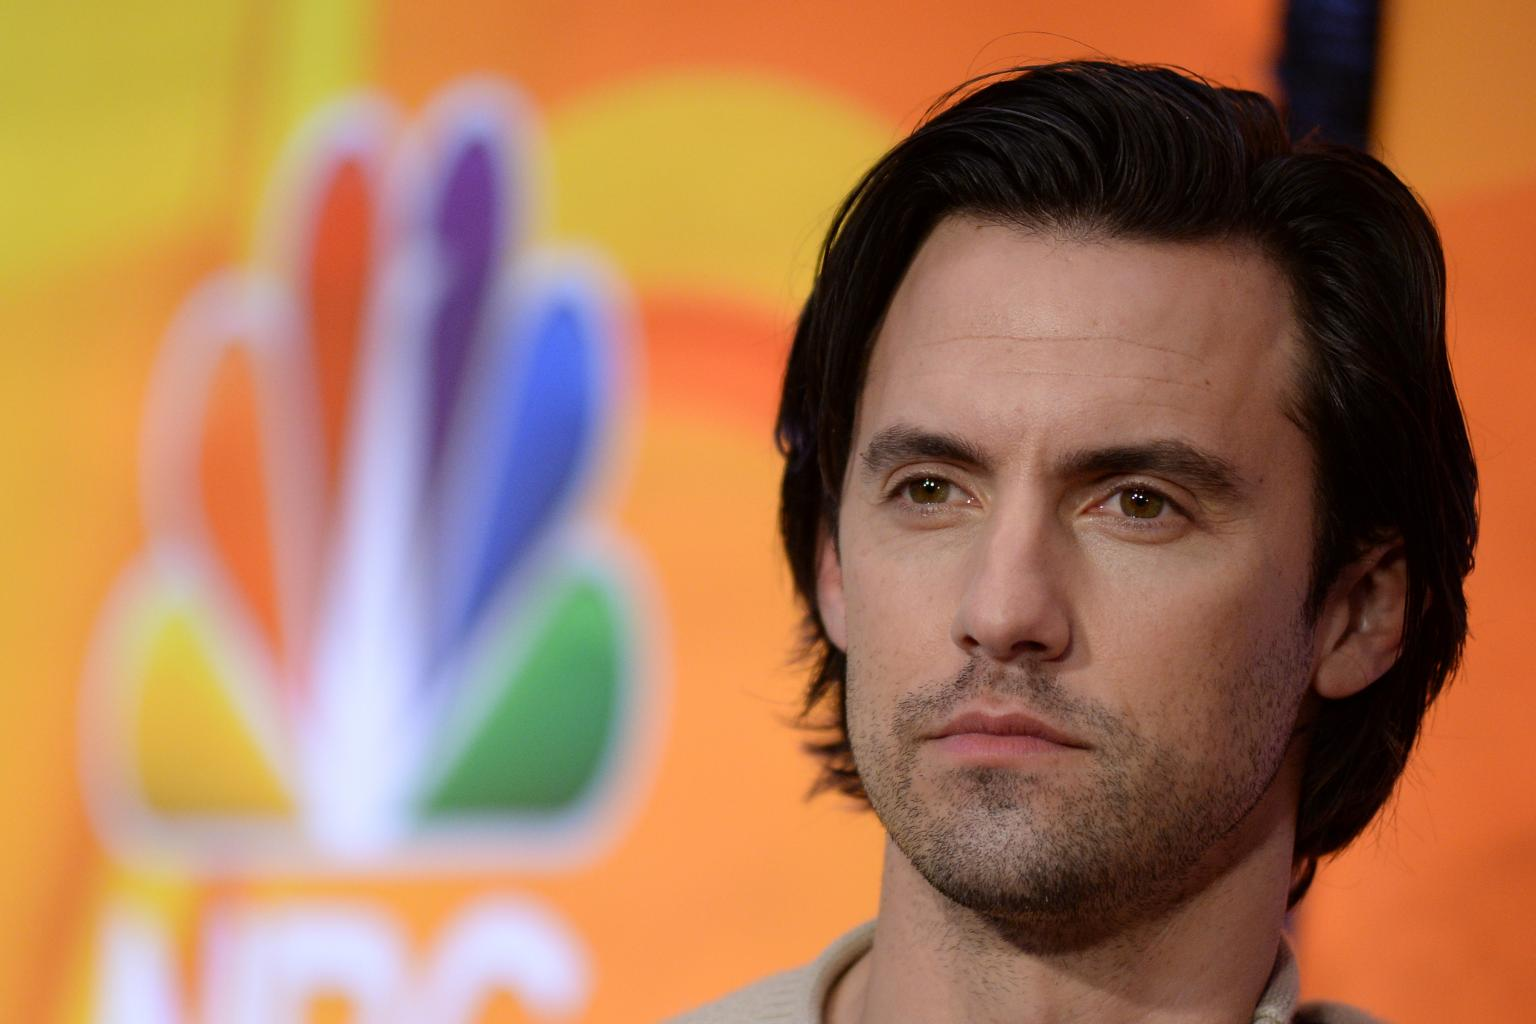 'This Is Us' Star Milo Ventimiglia Warns Final Two Episodes Of Season Will Be 'Stressful'